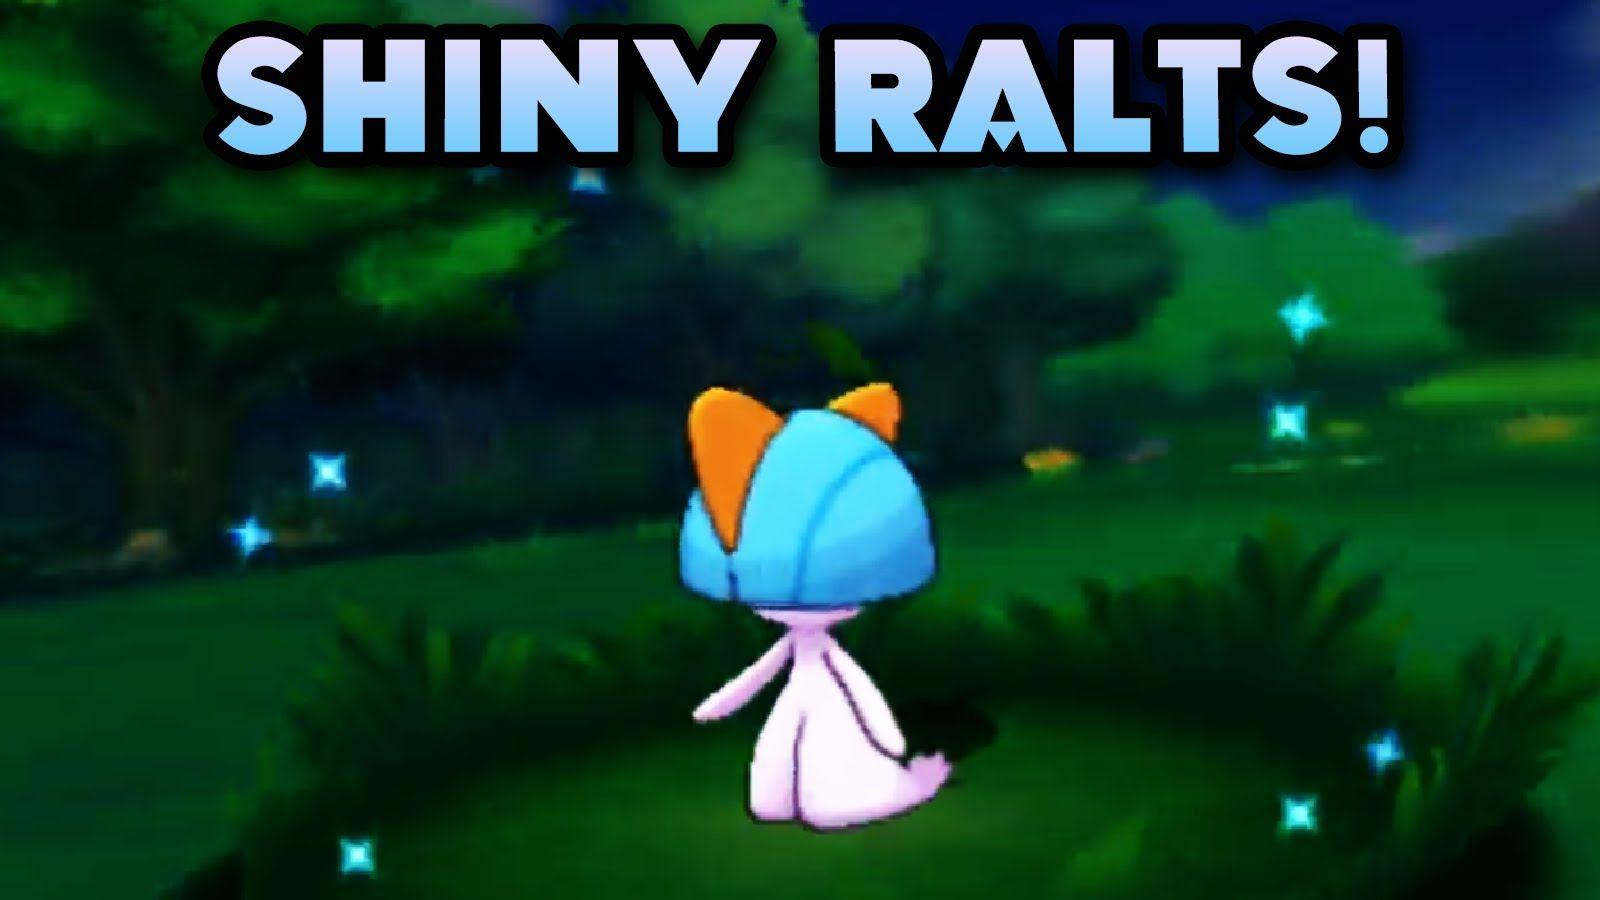 Shiny ralts after 4 encounters!! pokemon omega ruby! - YouTube